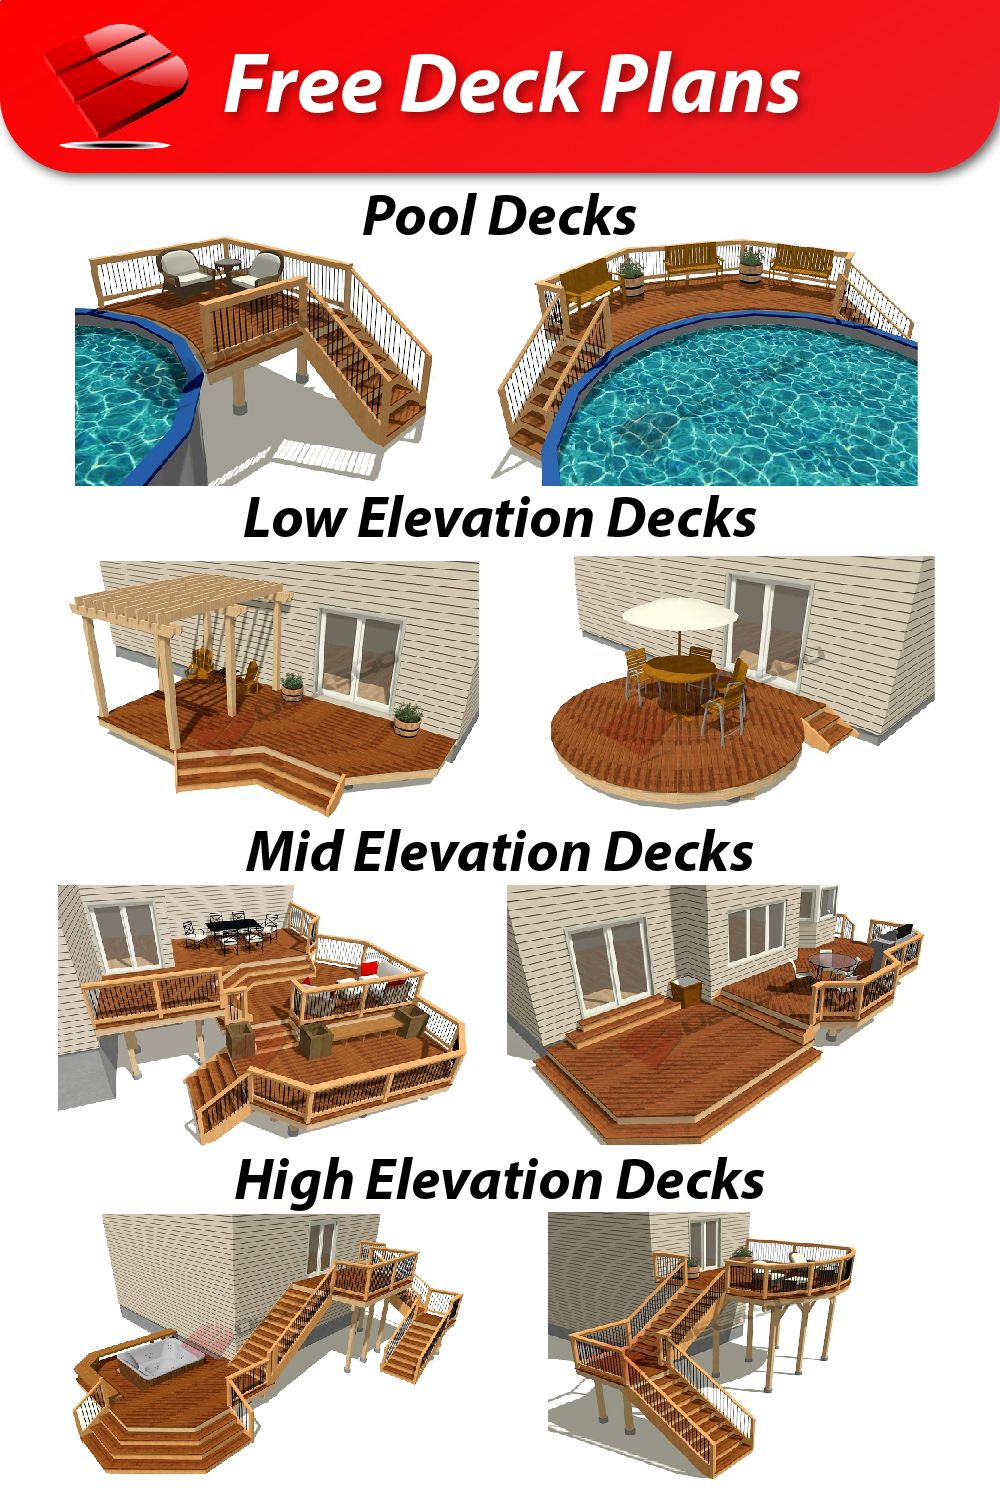 Our Free Deck Plans Have Everything You Need To Feel Confident When It S Time To Build Including Detailed Drawings Cost Free Deck Plans Deck Plans Dream Deck